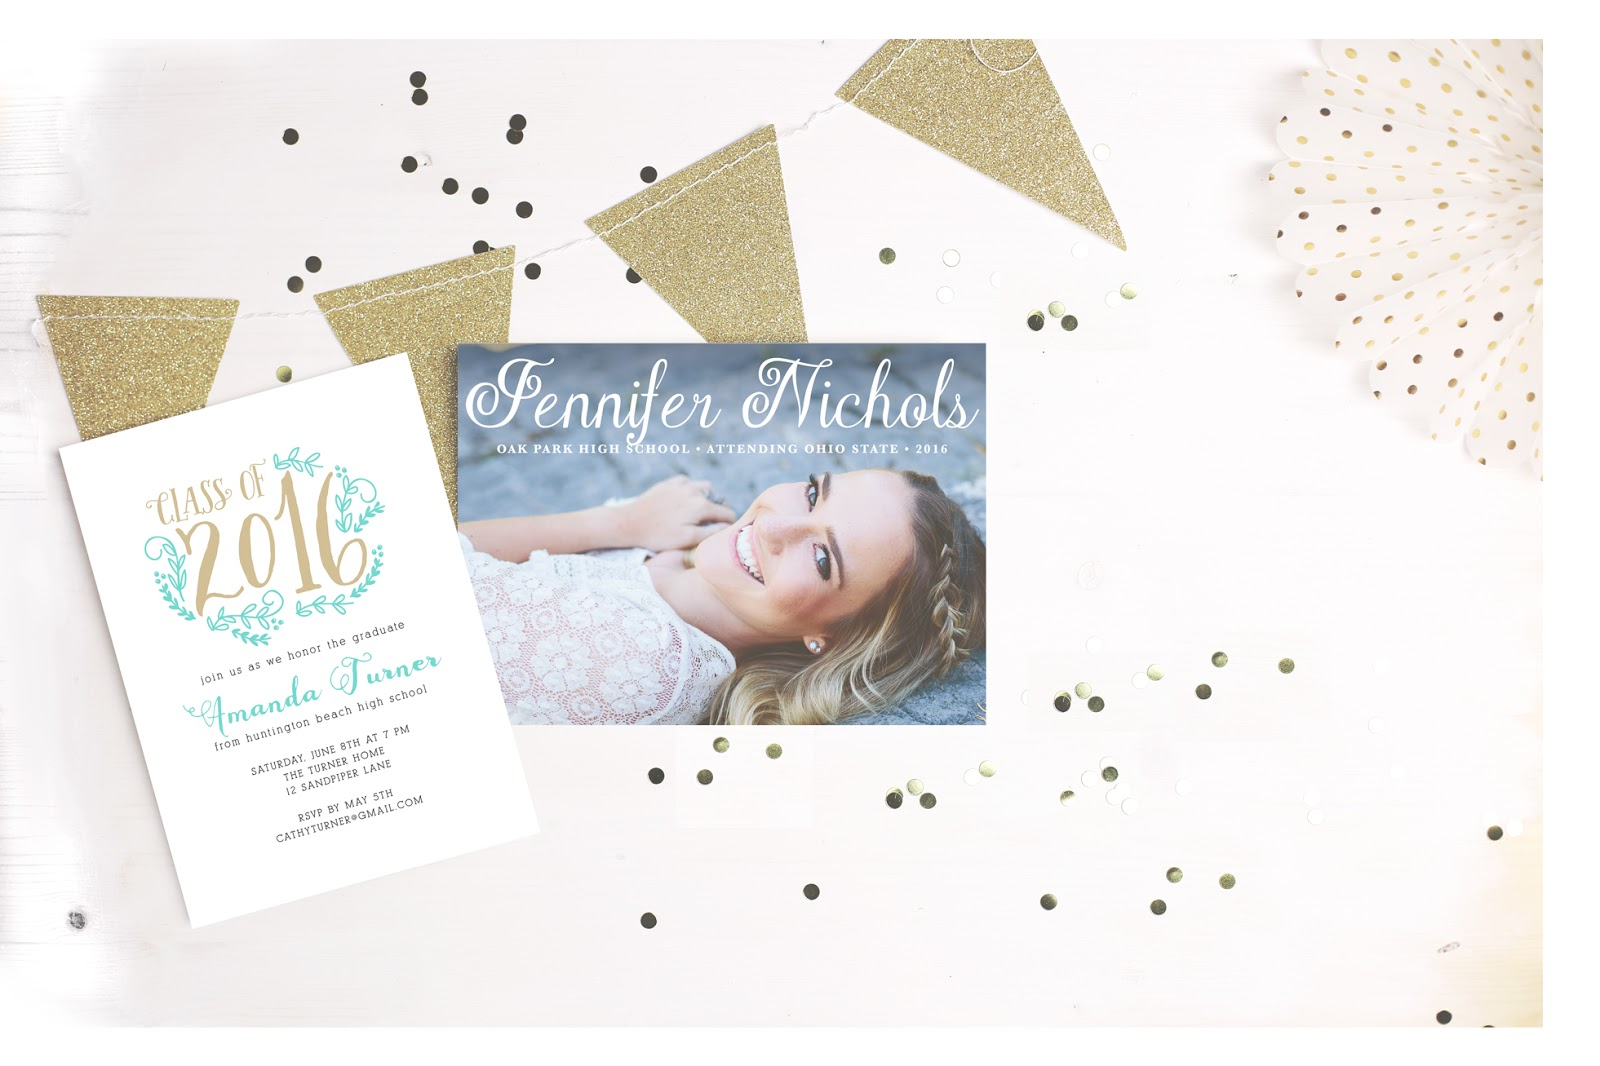 5 reasons to choose basic invite for your graduation announcements